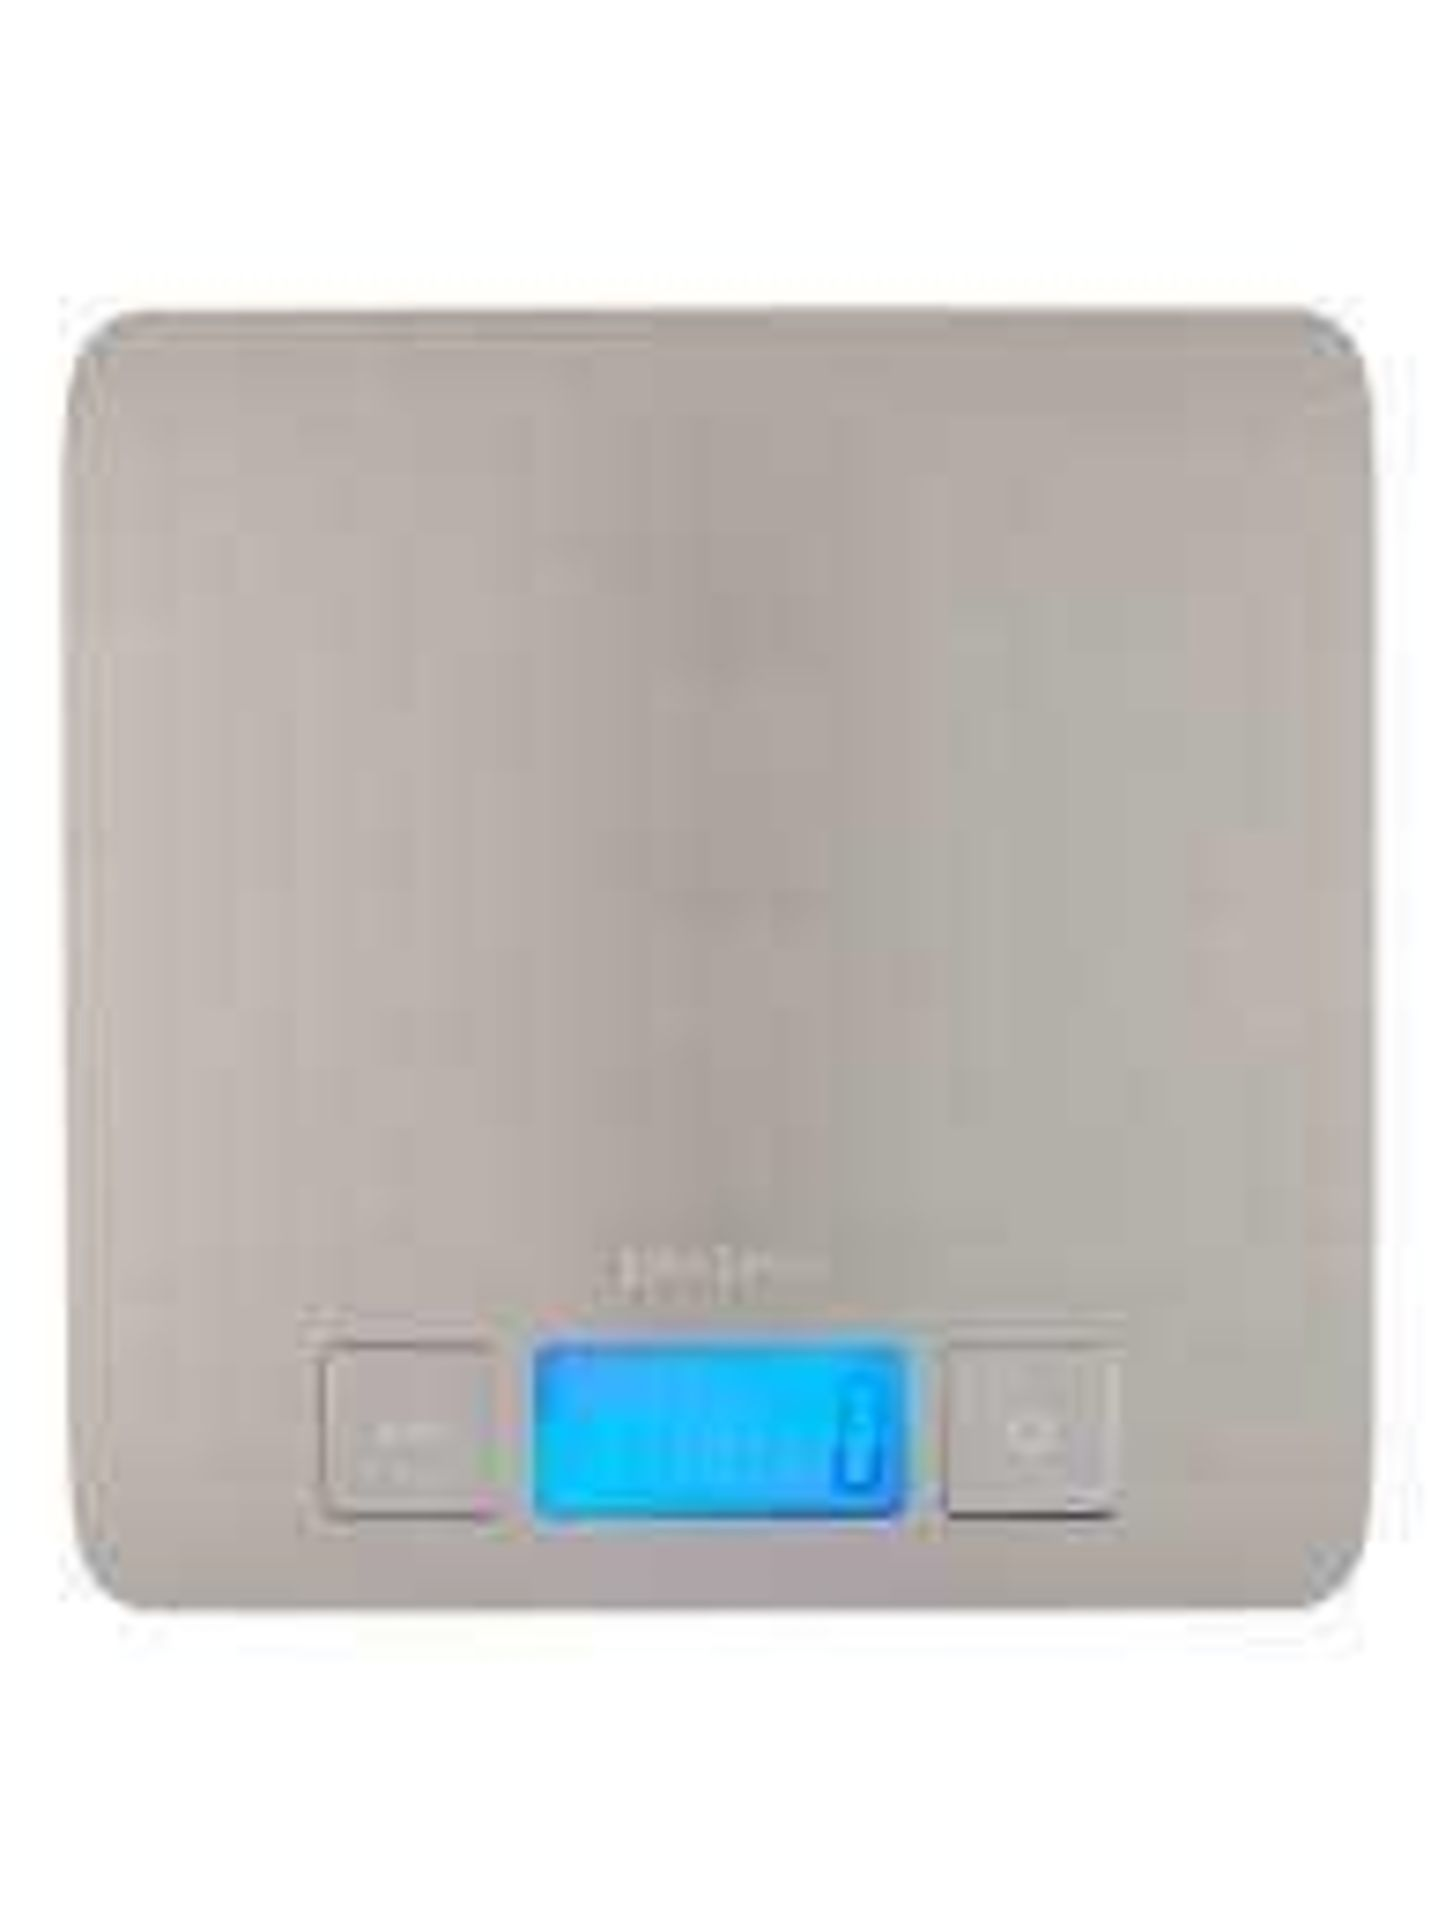 RRP £25 Each Boxed John Lewis Stainless Steel Electronic Scales